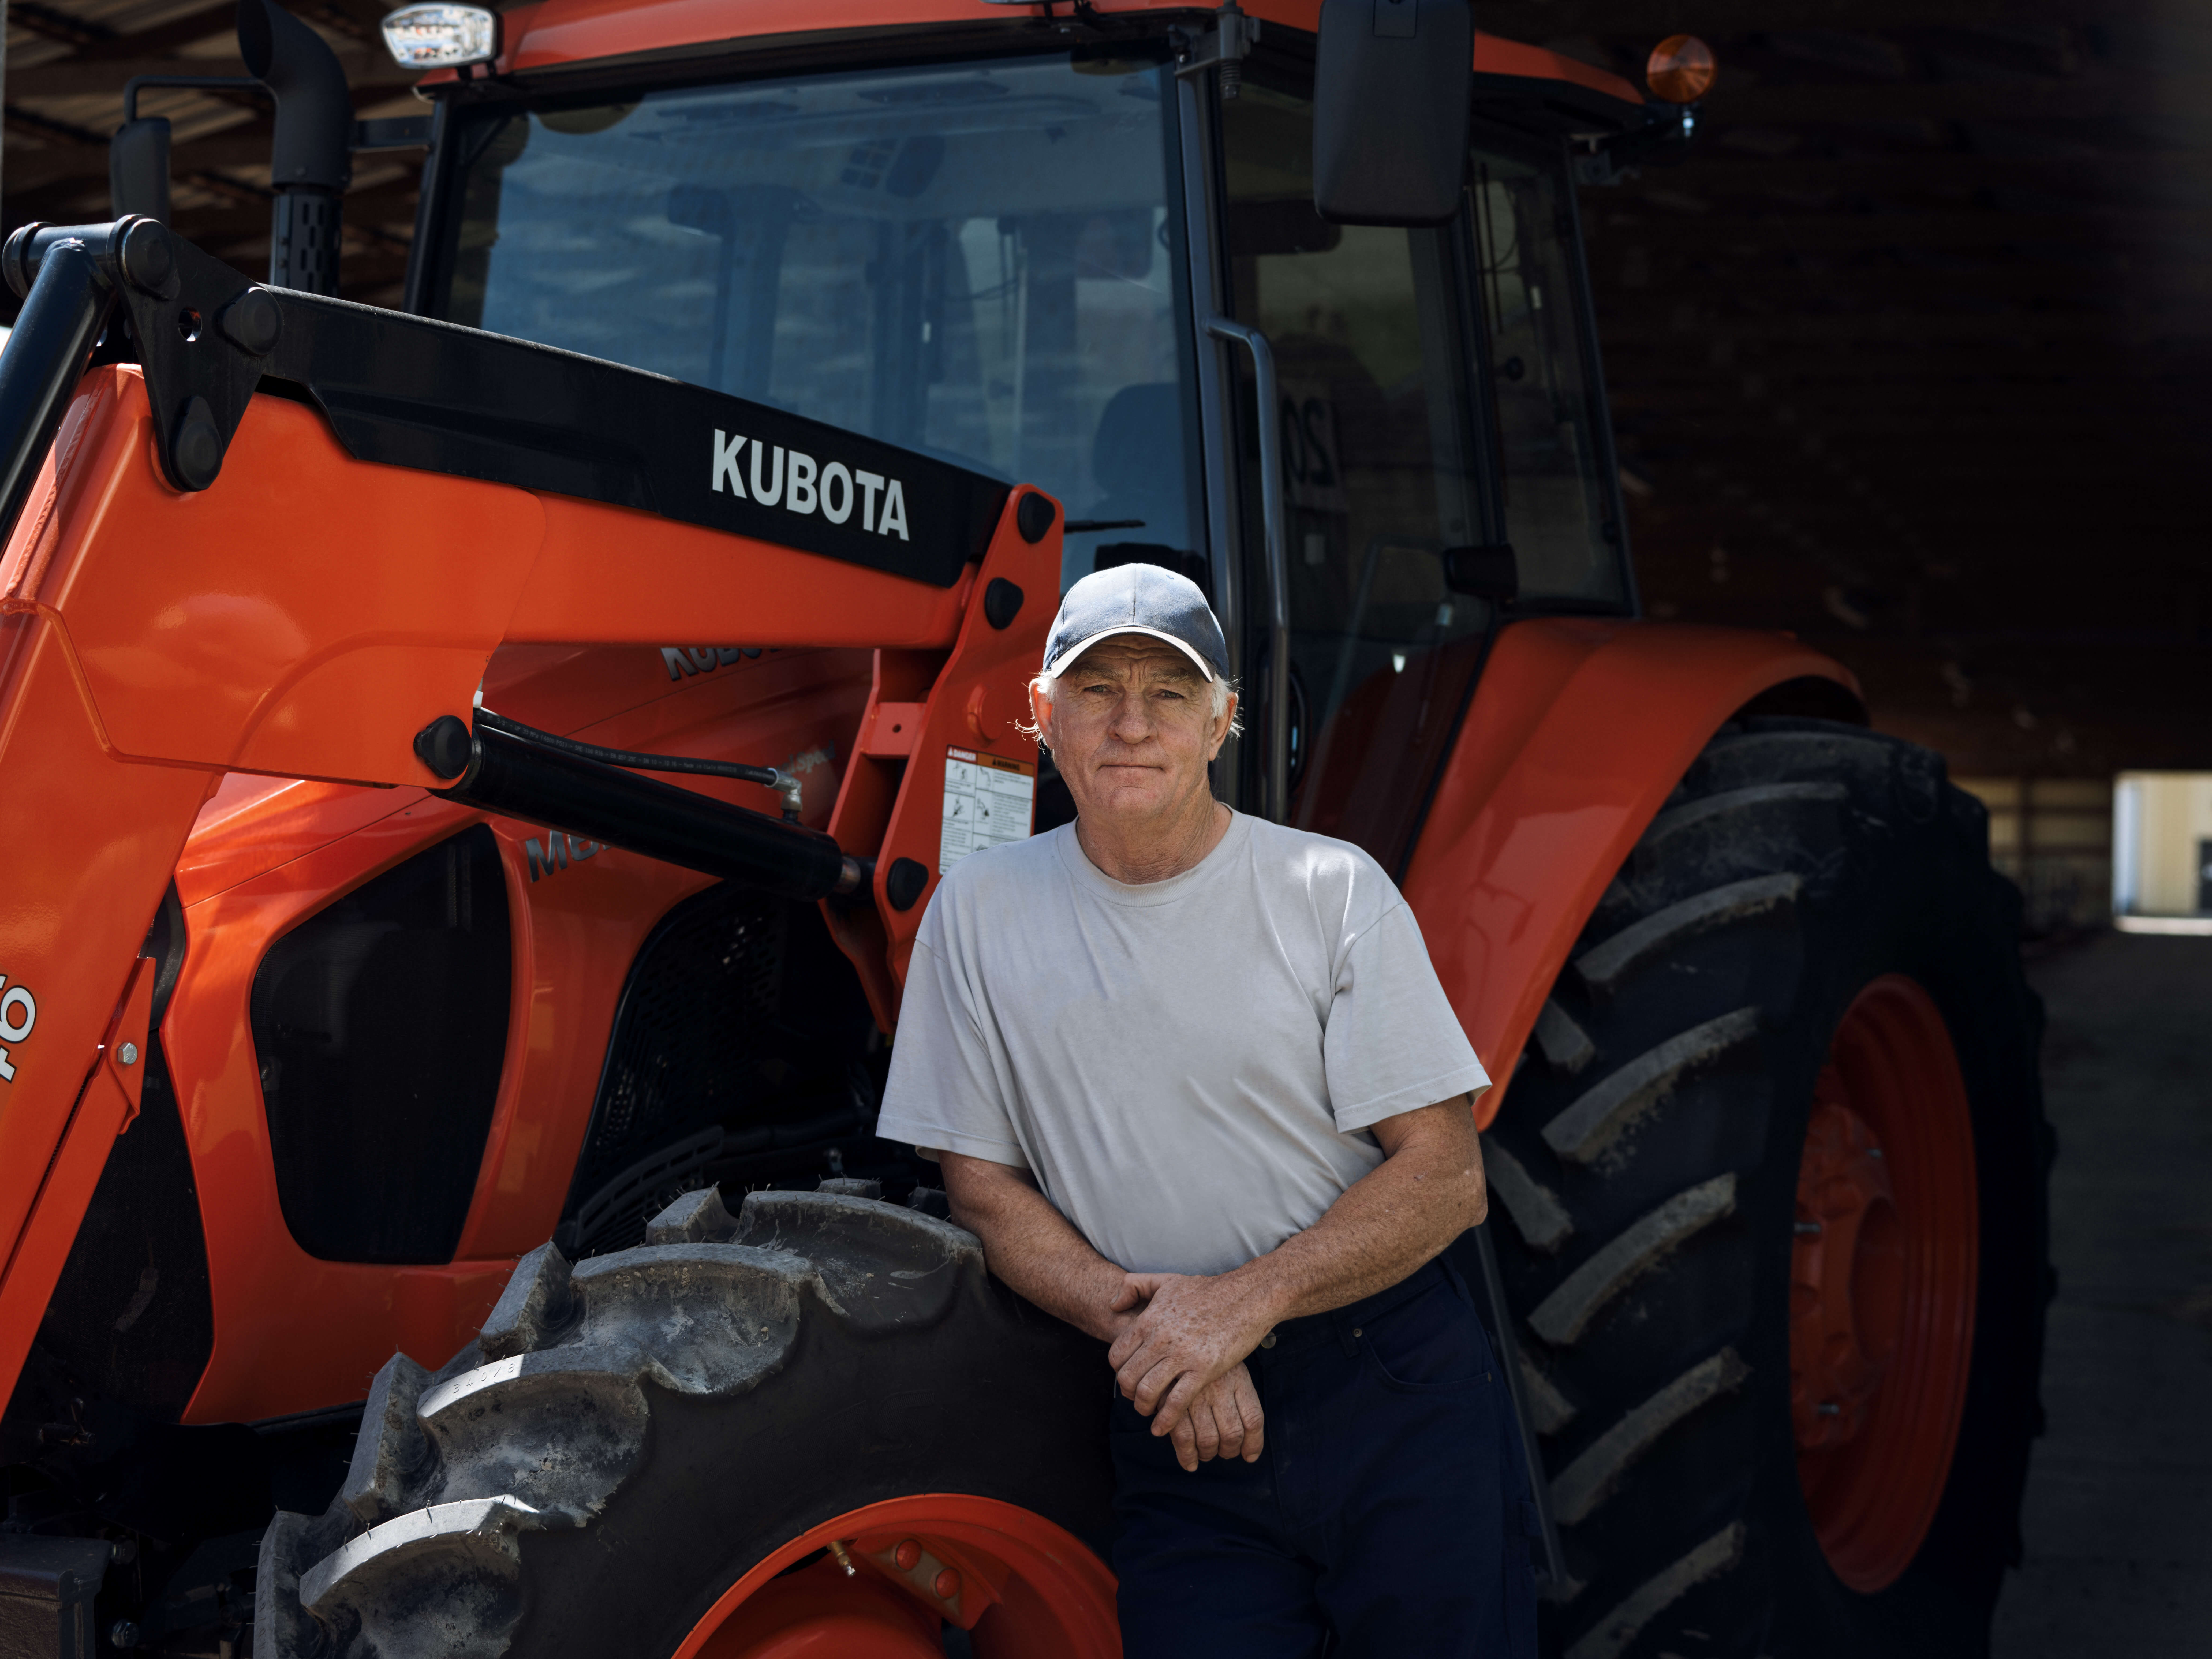 Unified Content Toronto, Unified Content, Max Rosenstein, Kubota, Tractor, Kubota Tractors, tractor and heavy equipment manufacturer, Kubota Product, Automobile, Automobile photography, product photography, farmers, real people, real farmers, farm ontario, ontario farming, summer